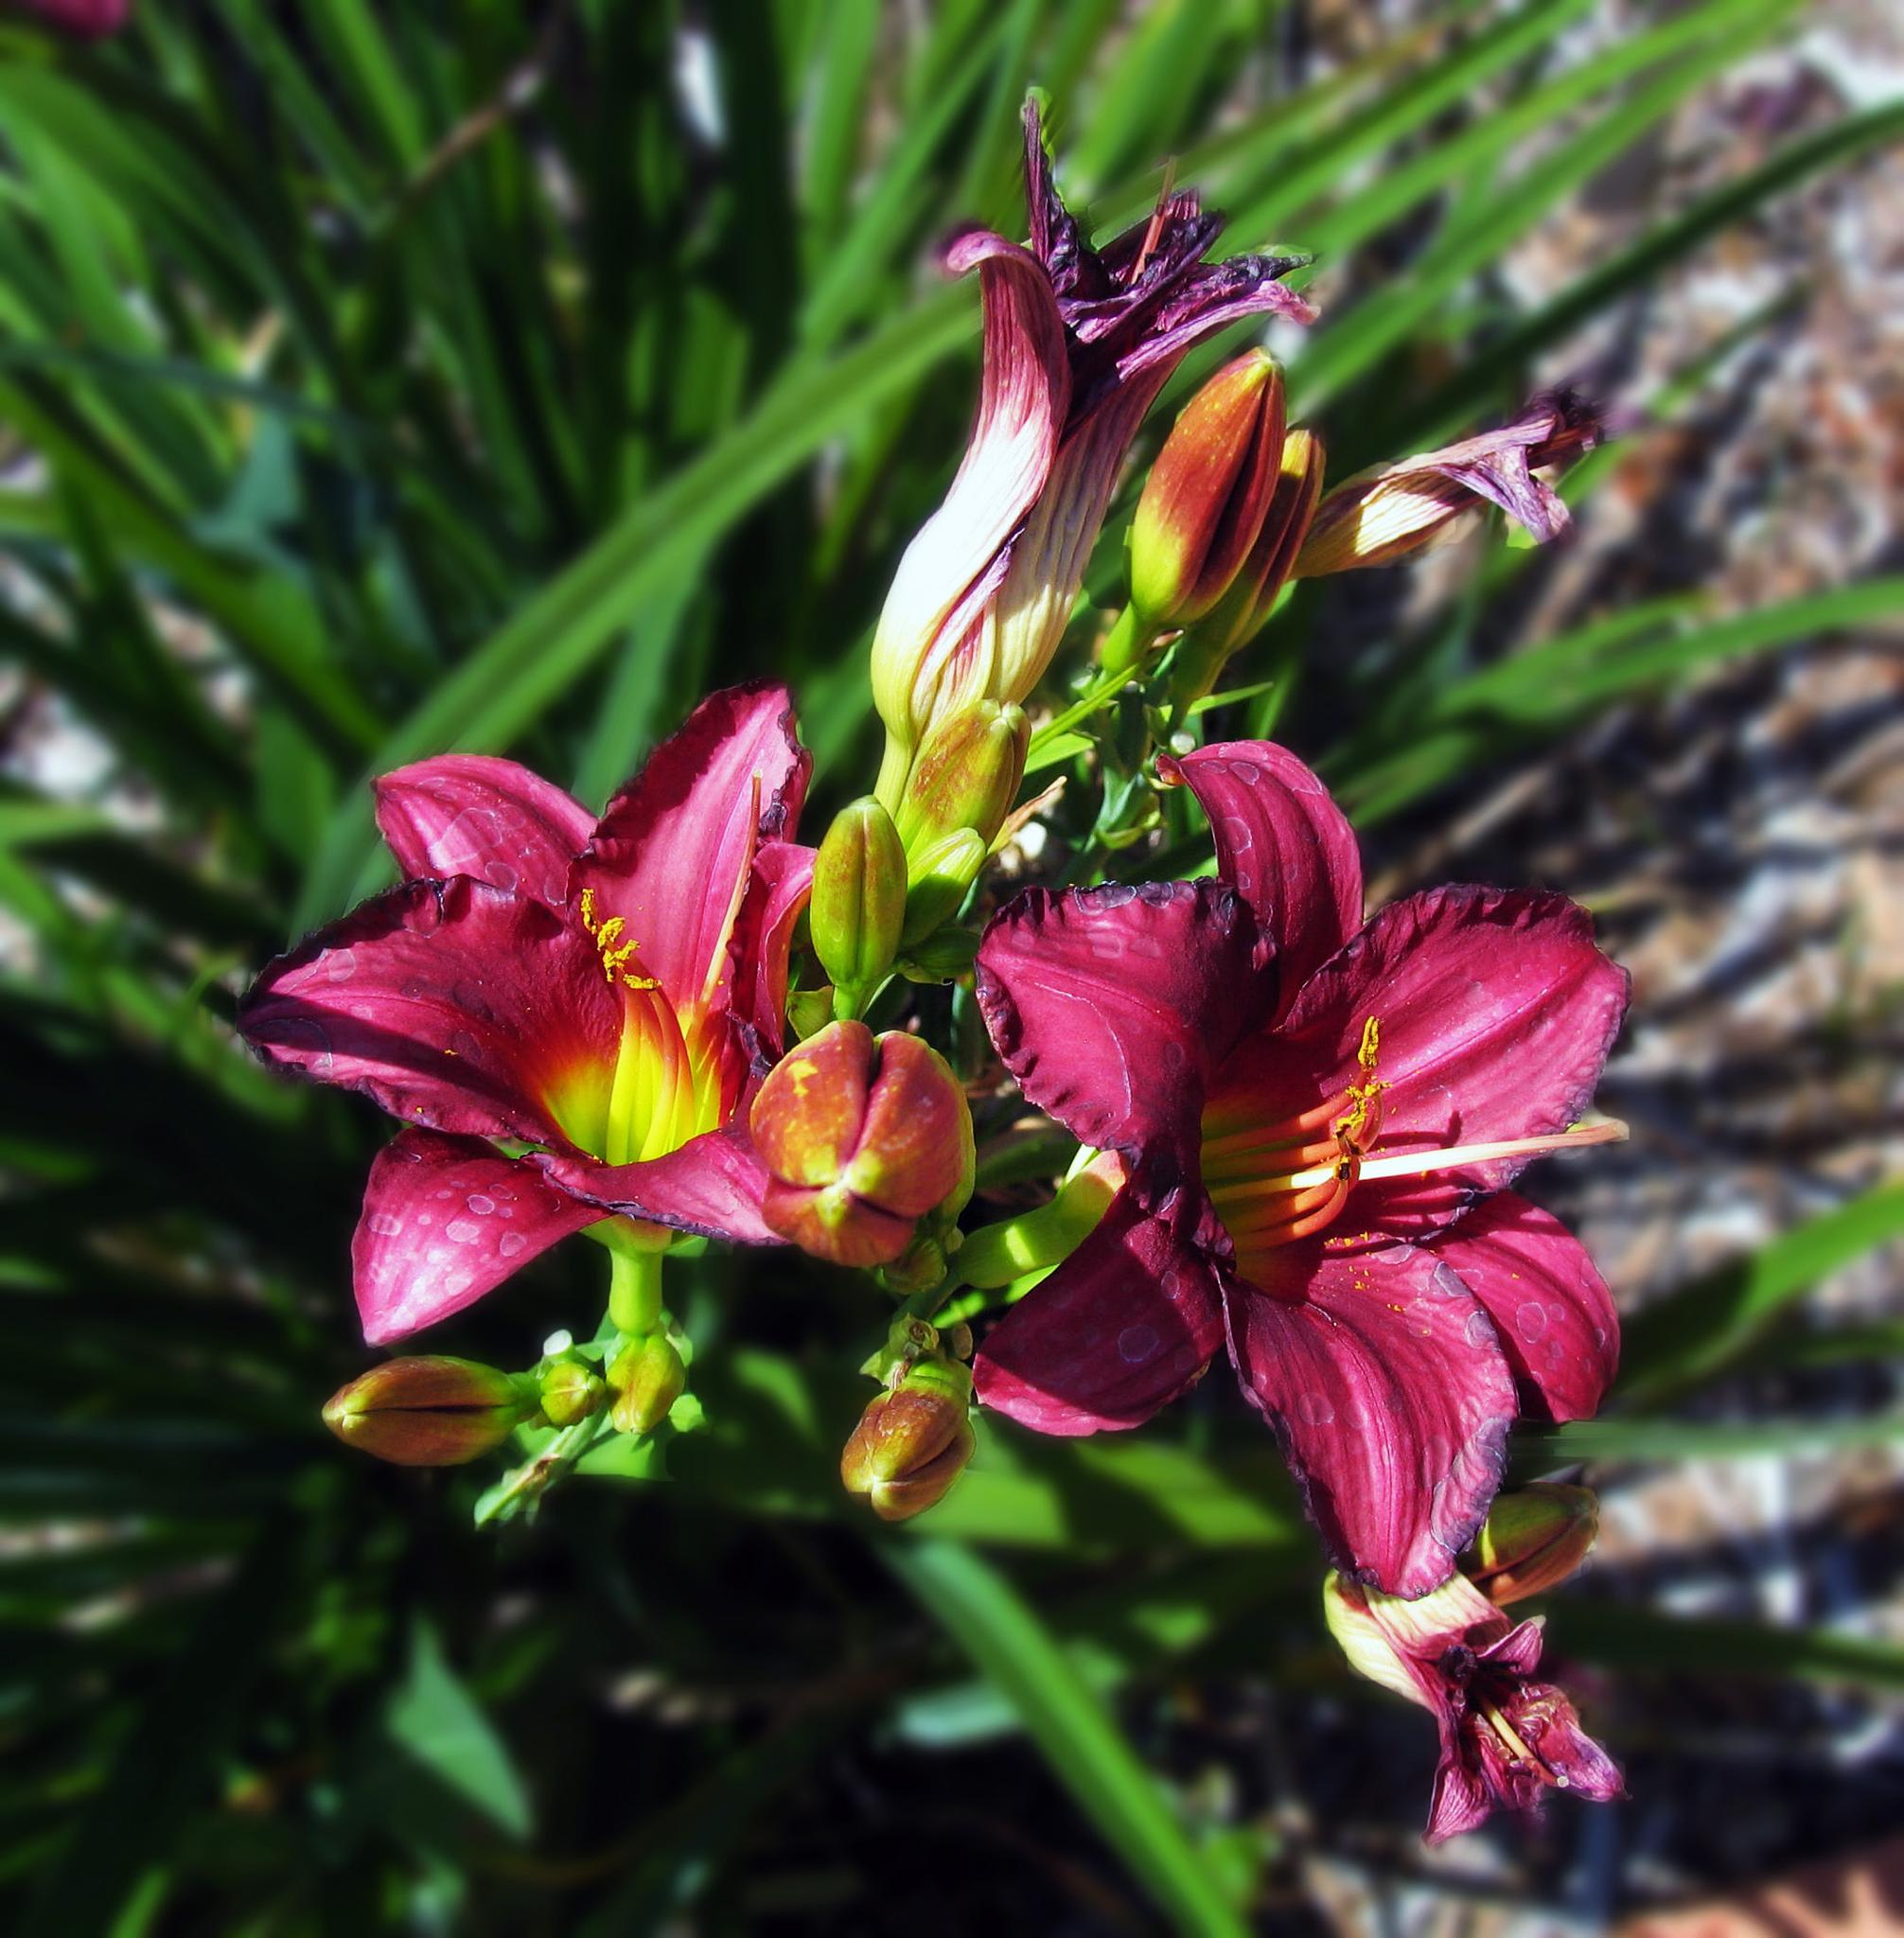 Delightful Day Lilies by monarch